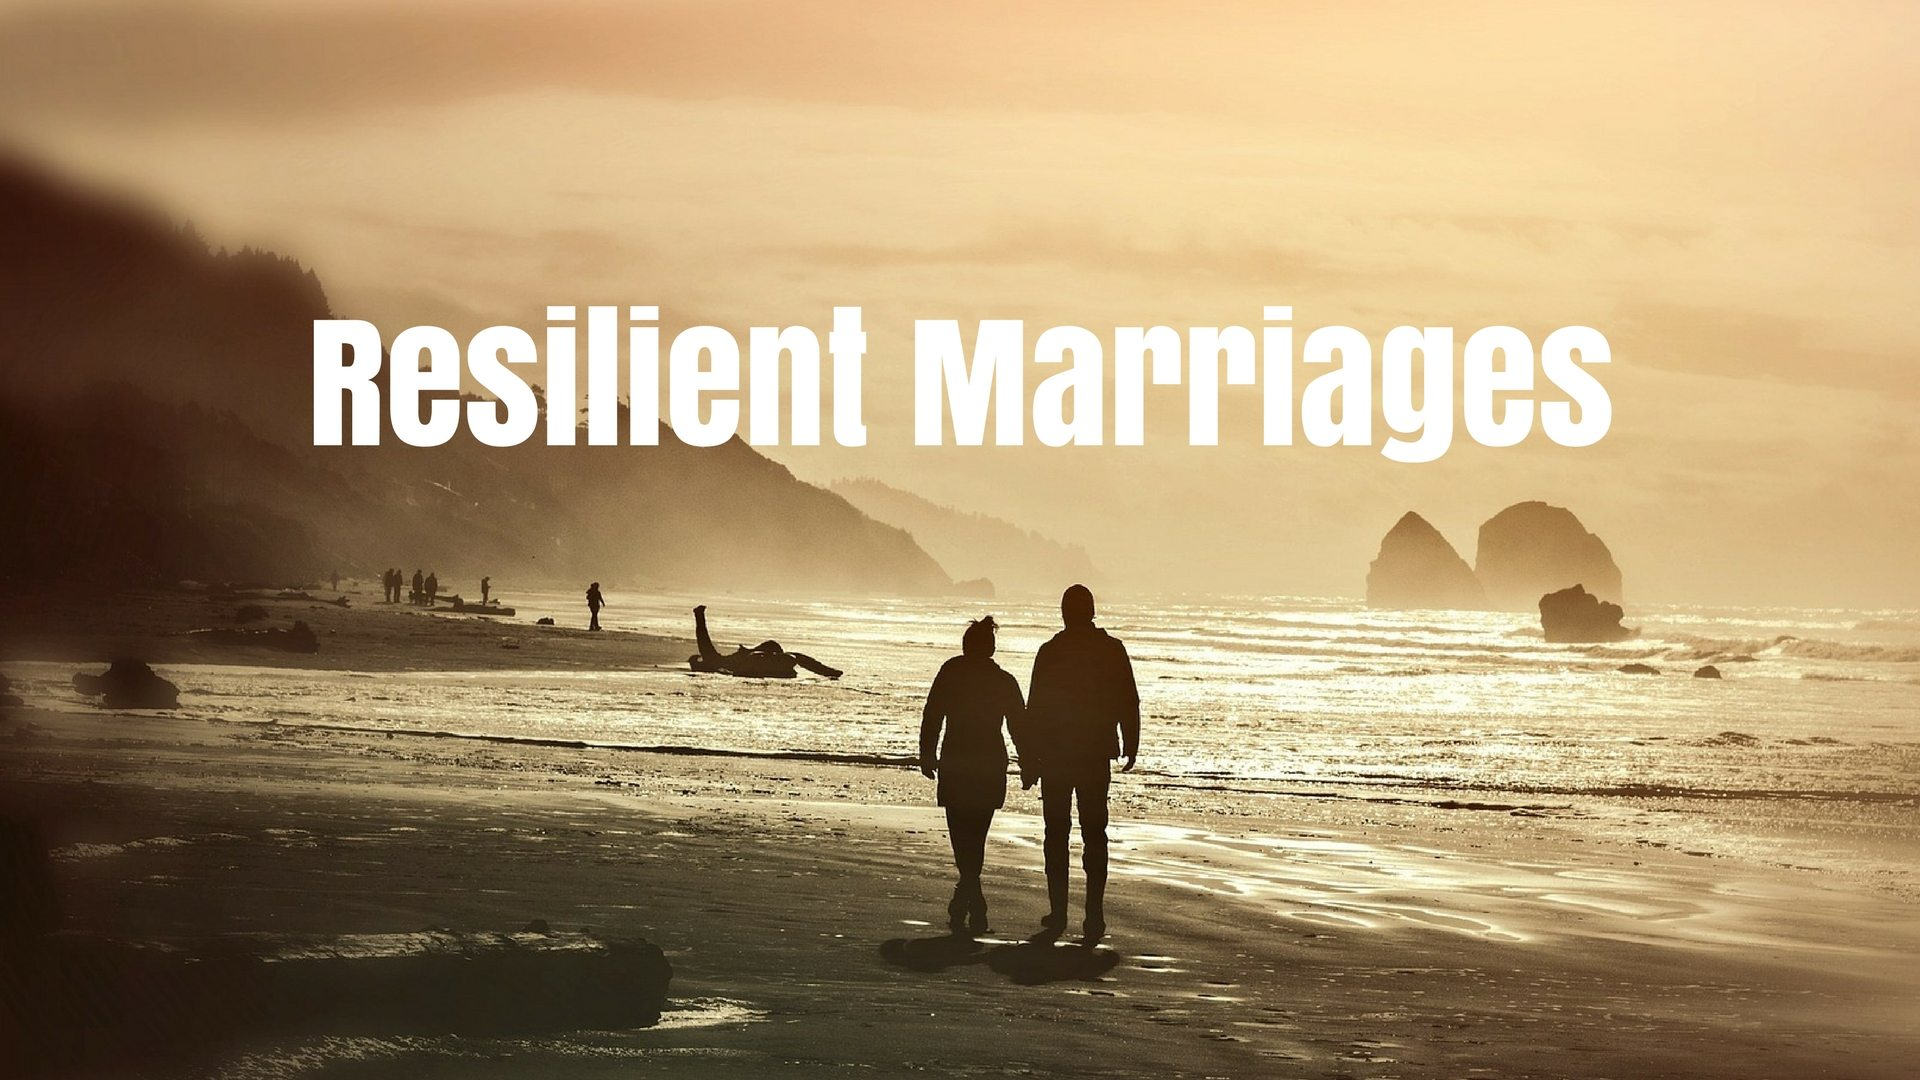 Resilient Marriages - Pixabay - Canva